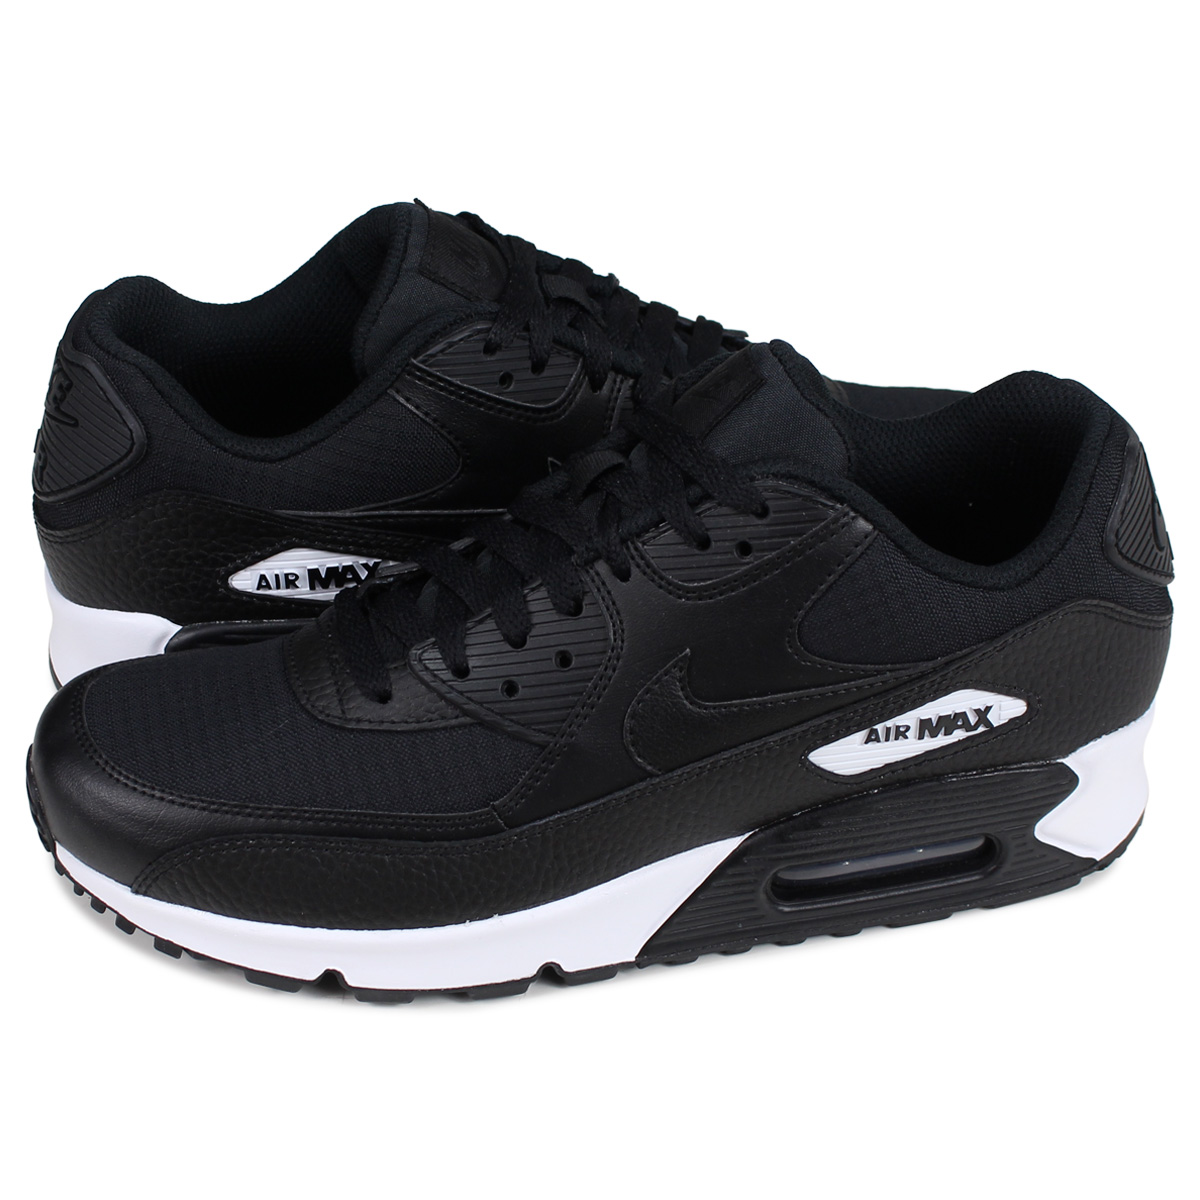 premium selection 1e219 c0c2a Nike NIKE Air Max 90 sneakers men gap Dis WMNS AIR MAX 90 black black  325,213 ...